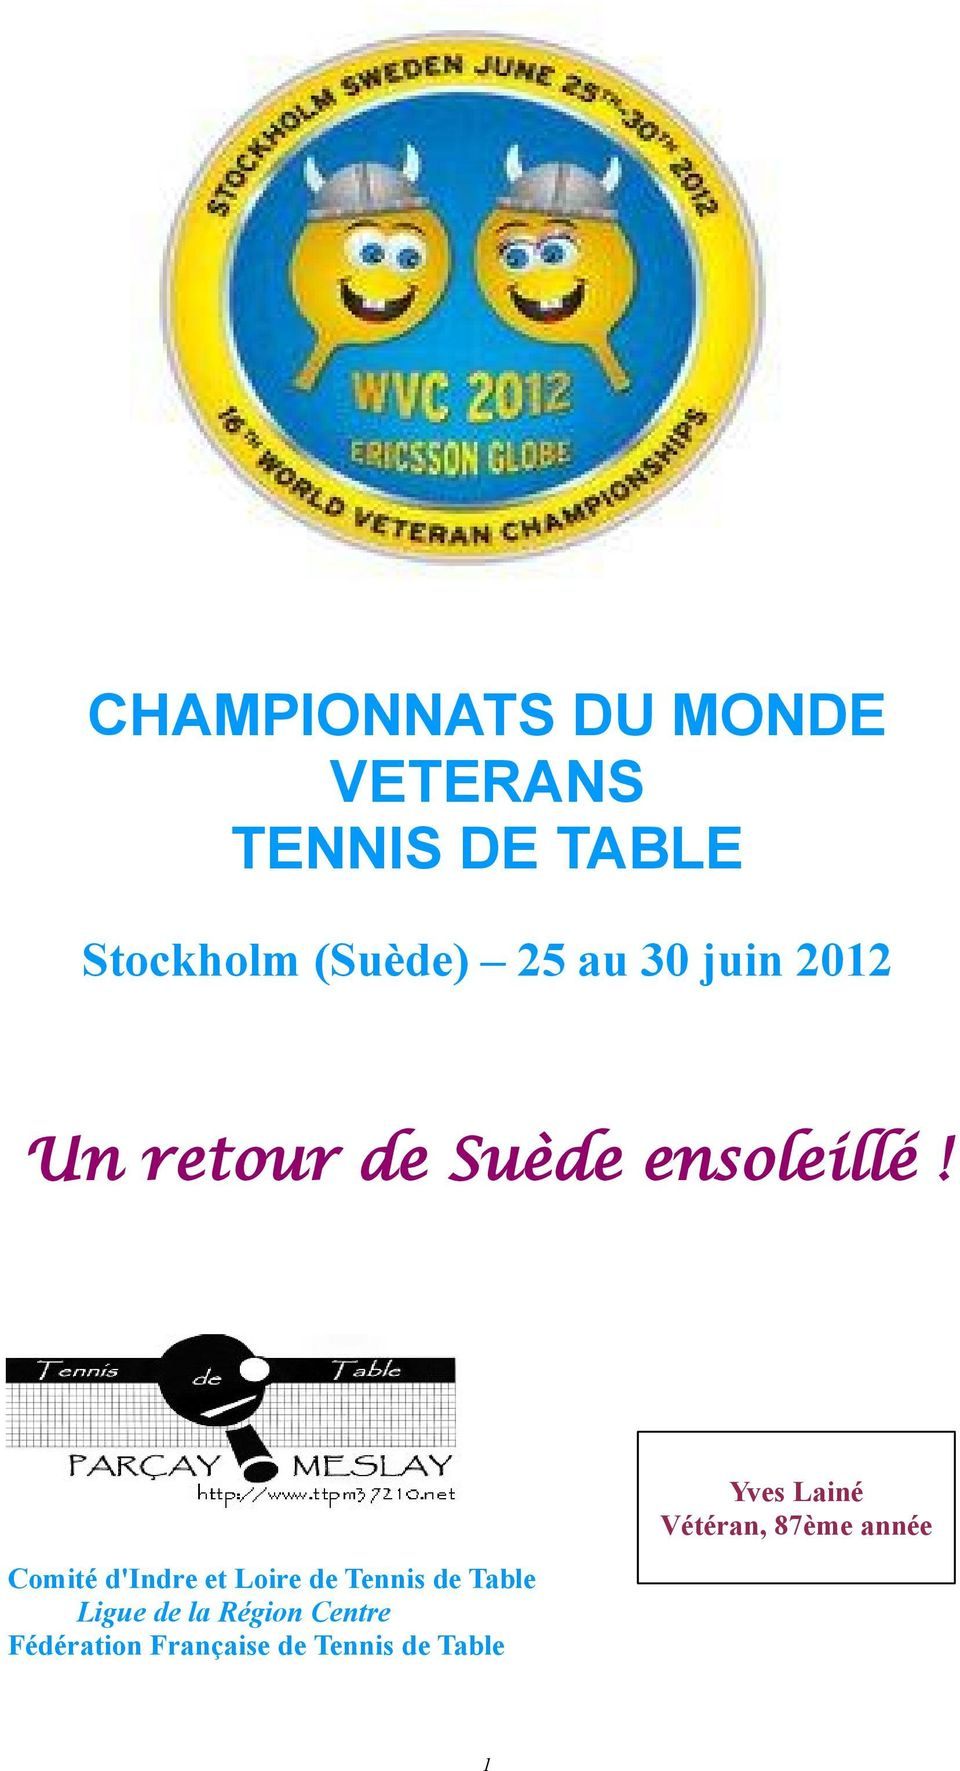 Championnats du monde veterans tennis de table pdf - Ligue de tennis de table poitou charentes ...